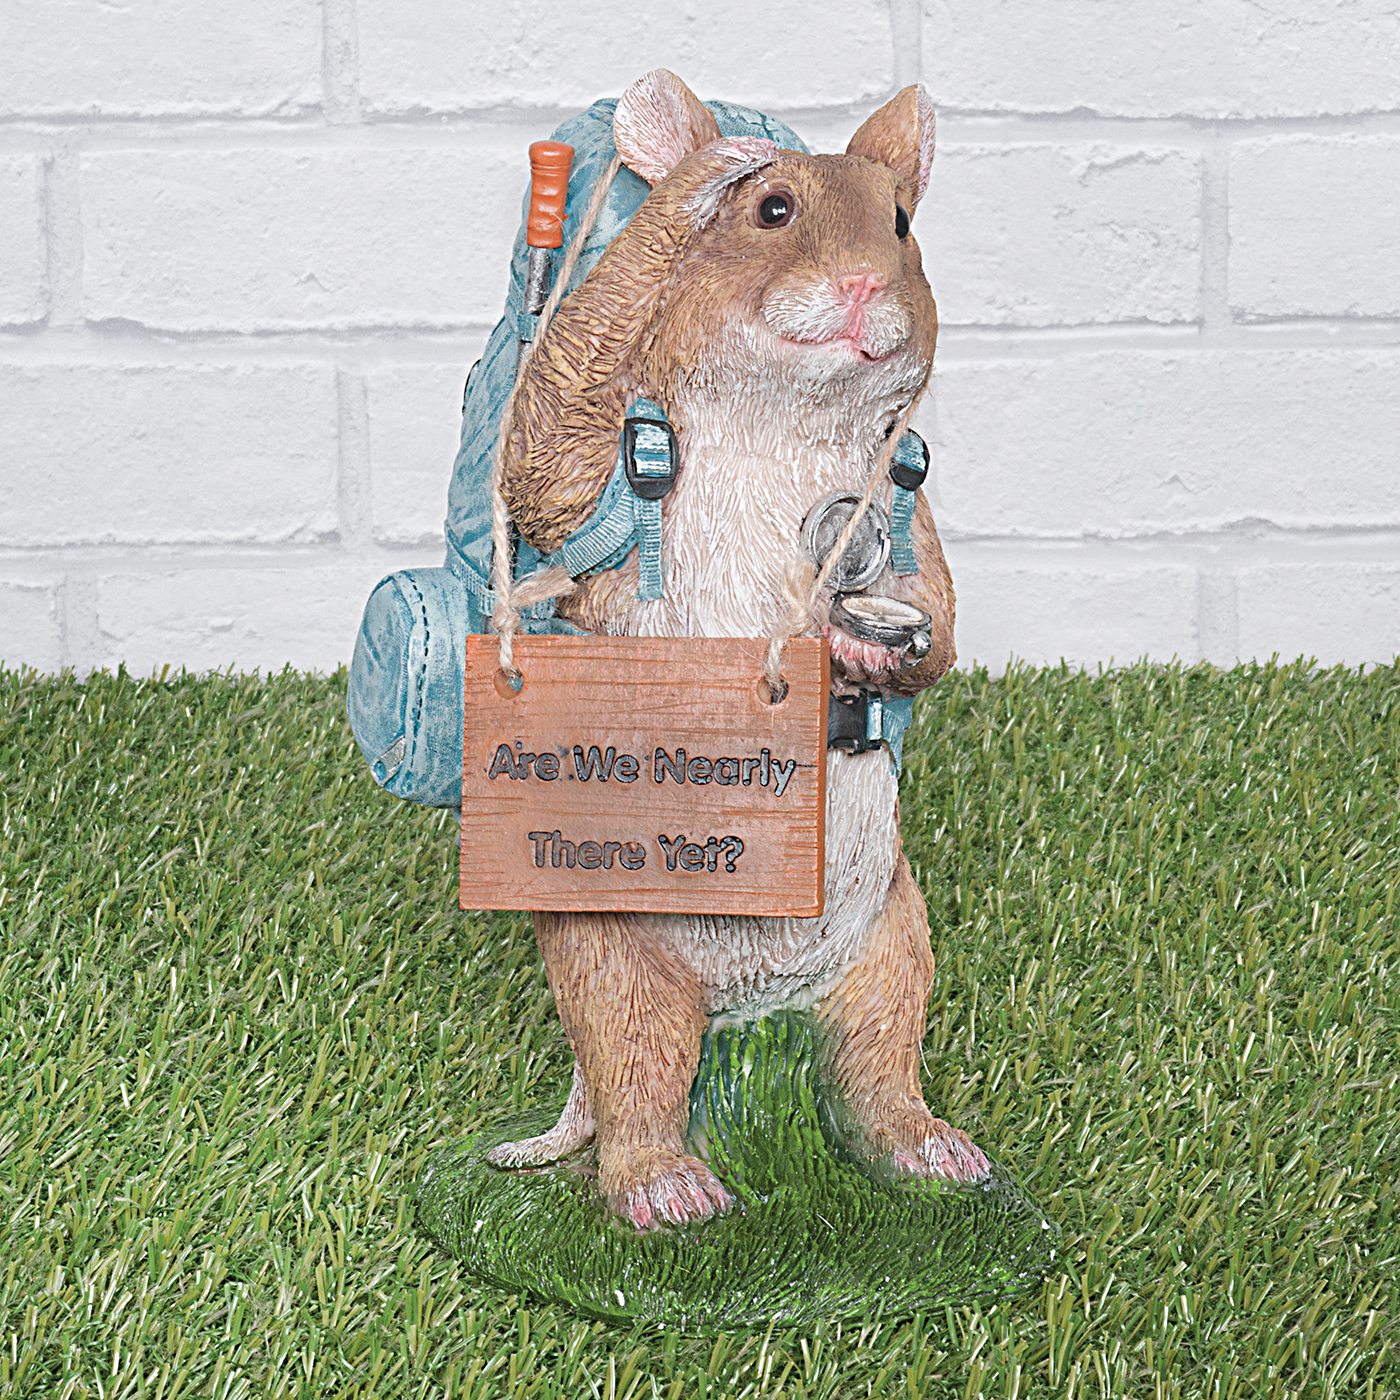 Mike the Hiking Mouse